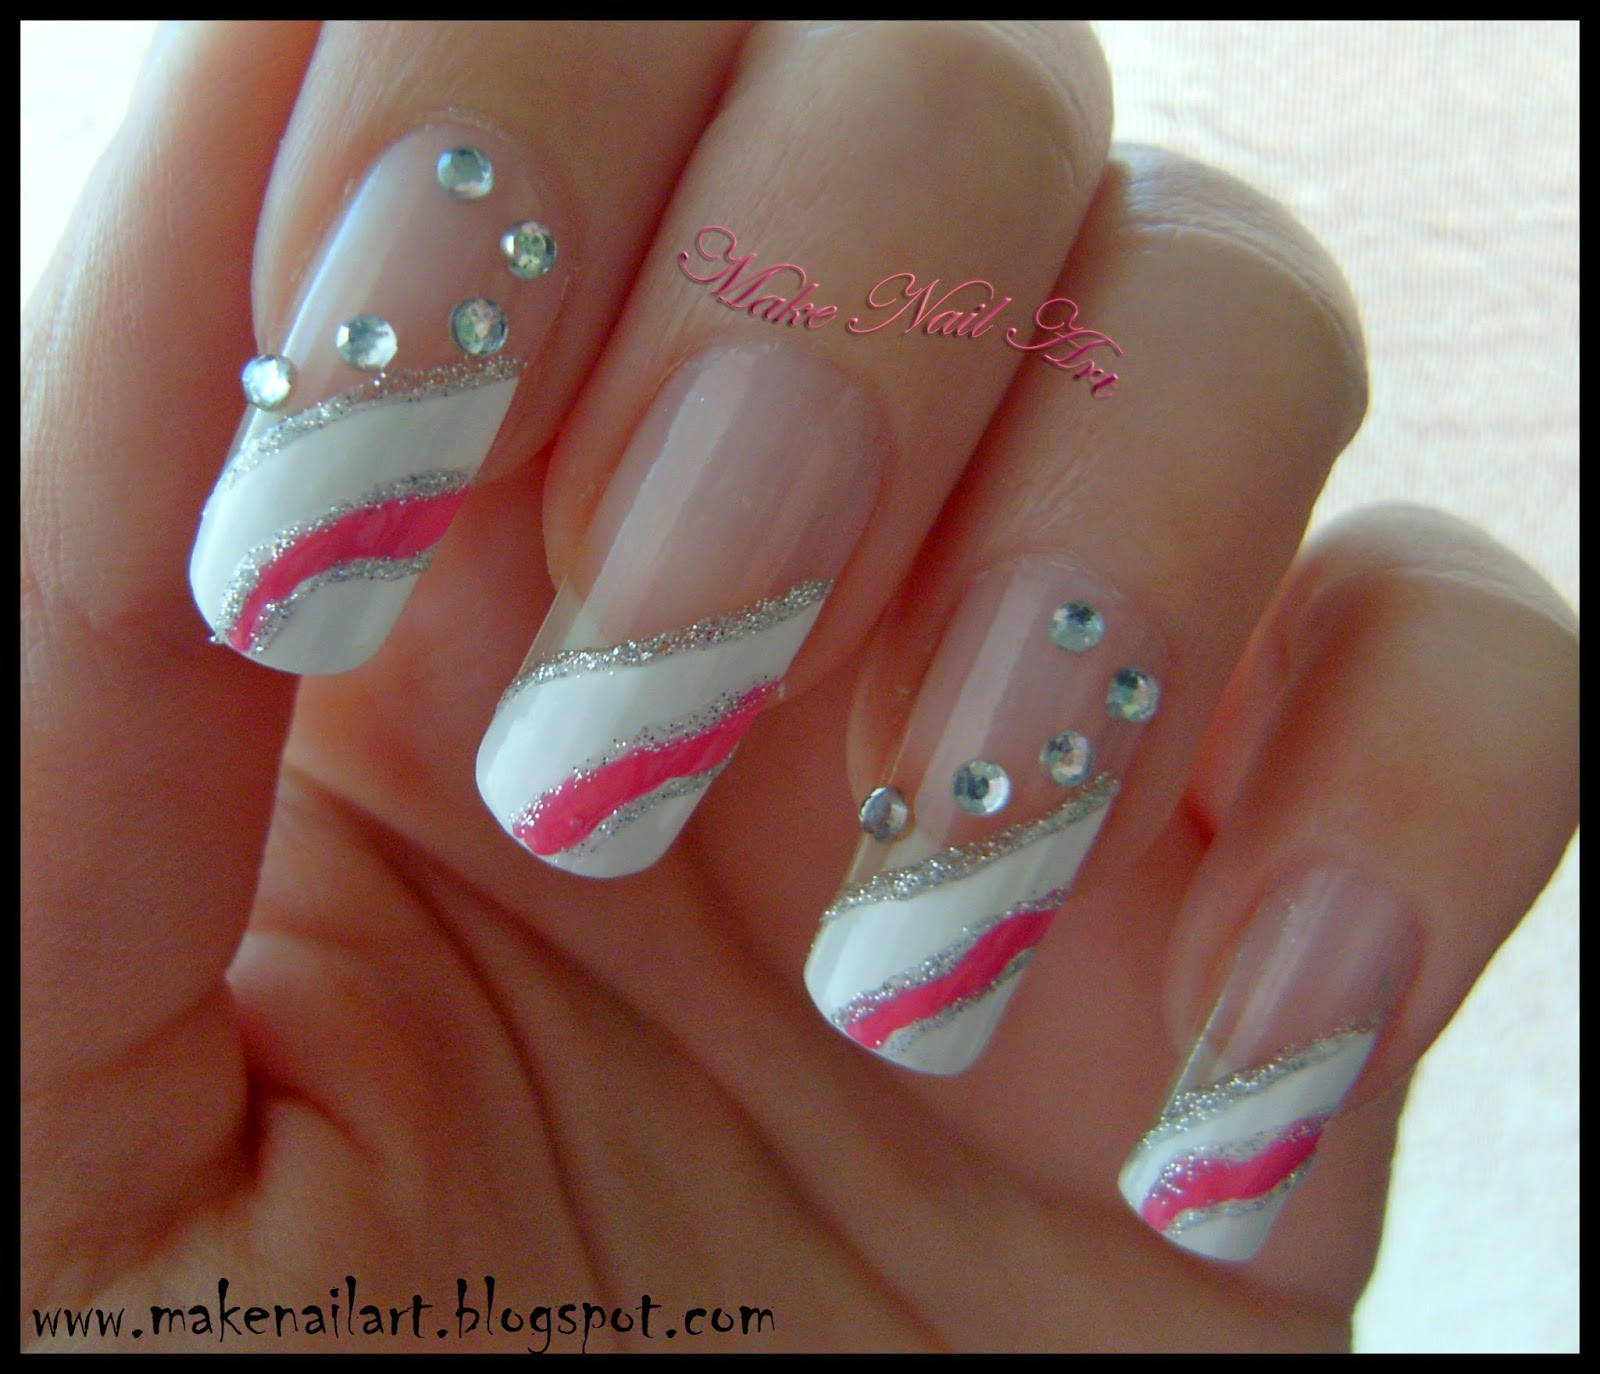 Make Nail Art: White And Pink Prom Nails Nail Art Tutorial